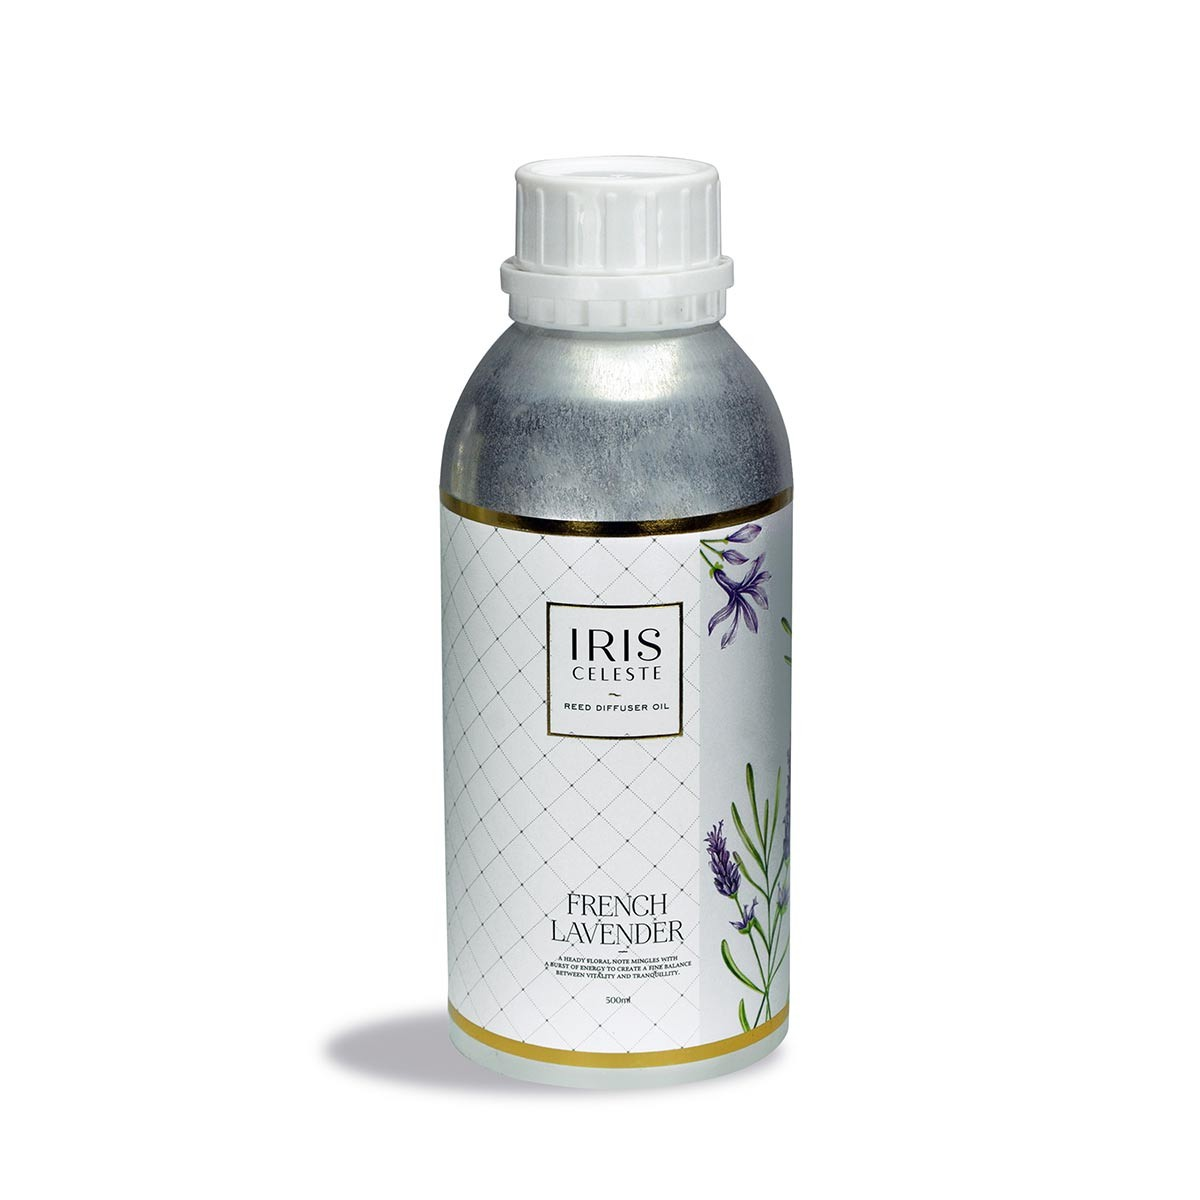 Iris Celeste Fragrance Vaporizer Oil French Lavender